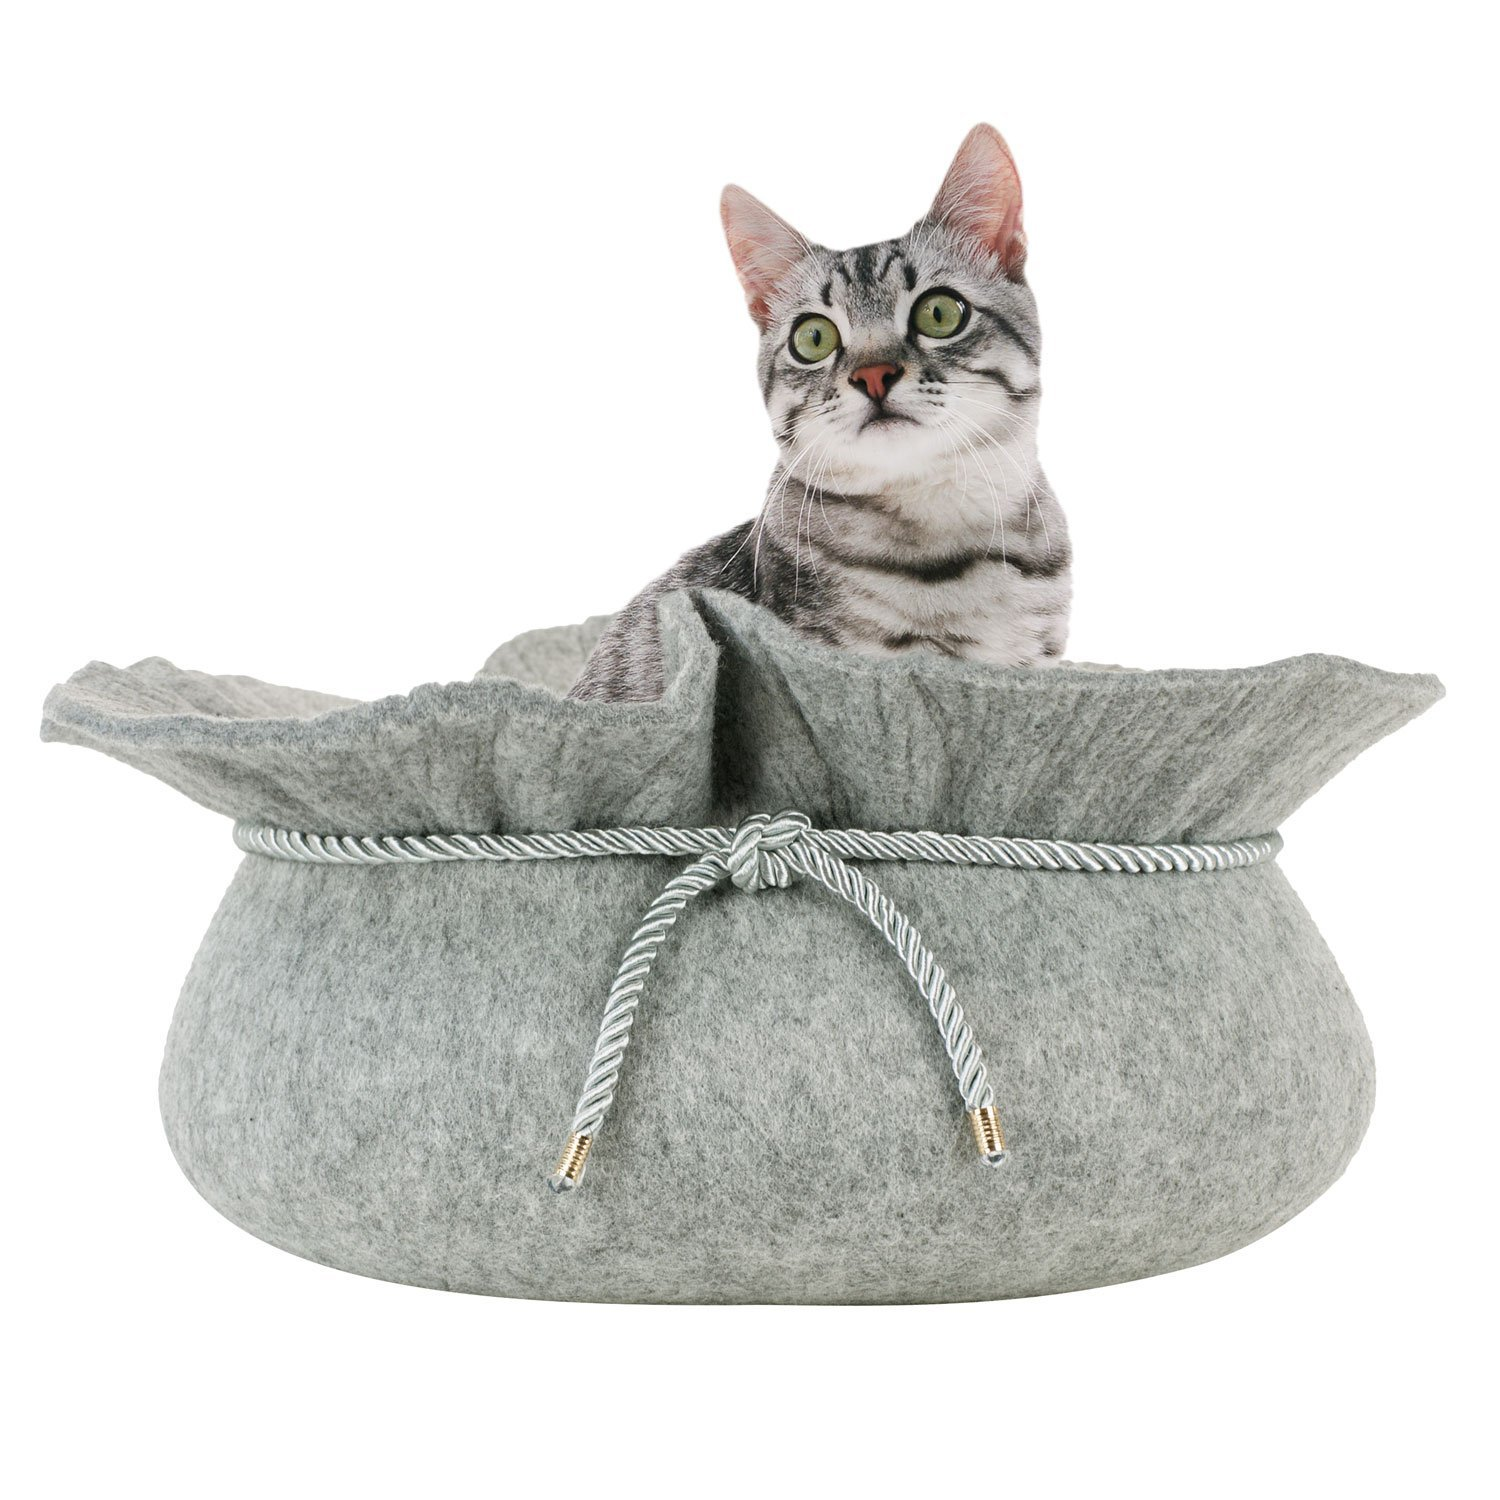 FrontPet Felt Cat Bed Cave Pod, 15 inches x 8 inches, Grey